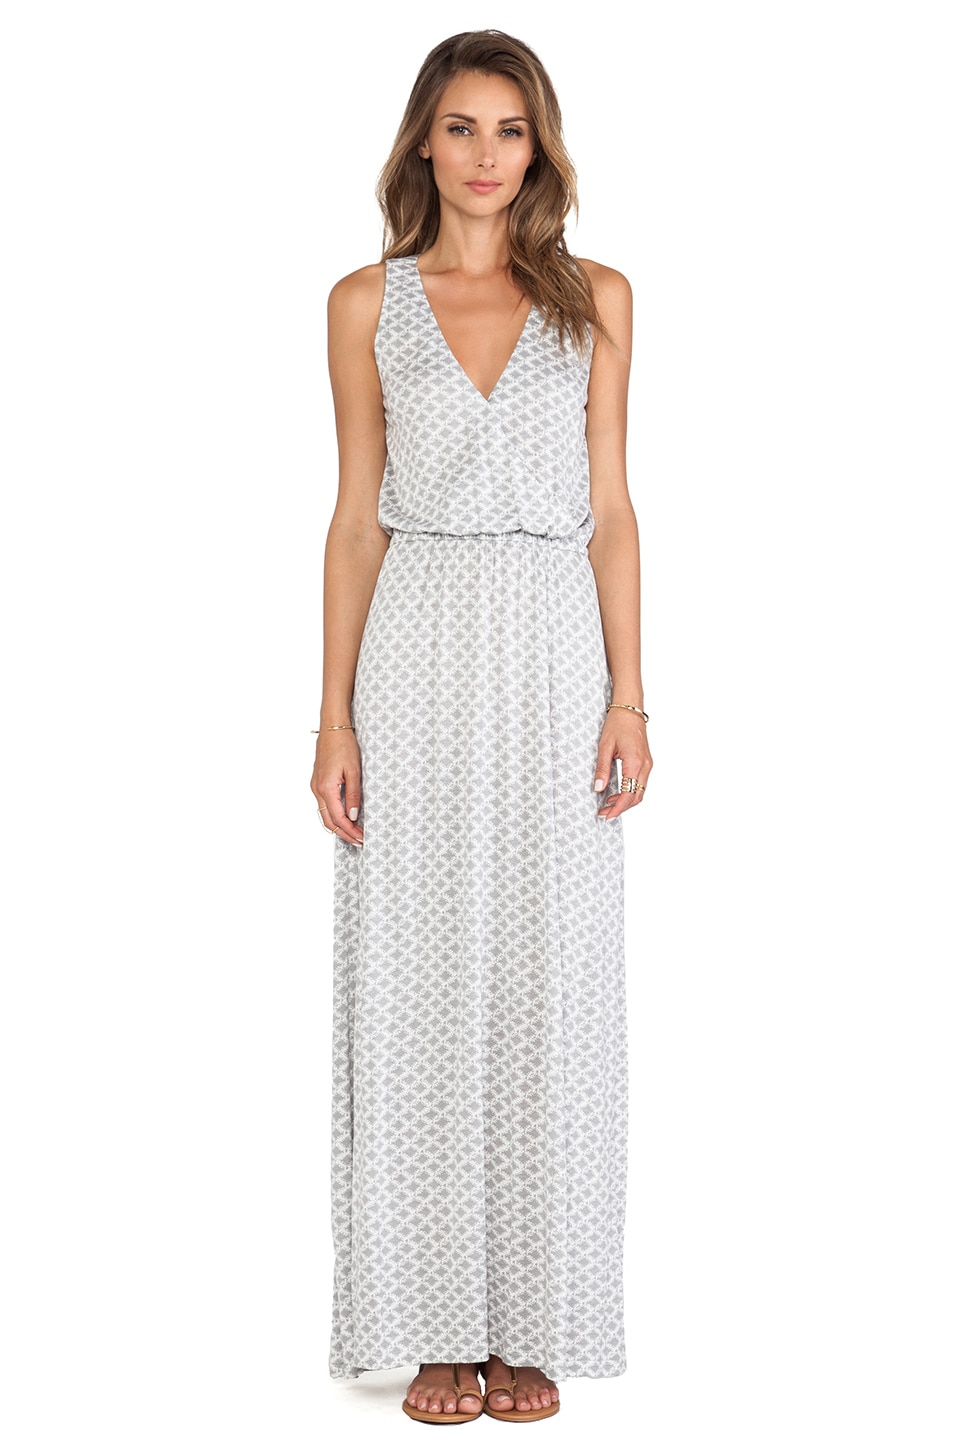 Joie Jaylen Maxi Dress in Silverfox